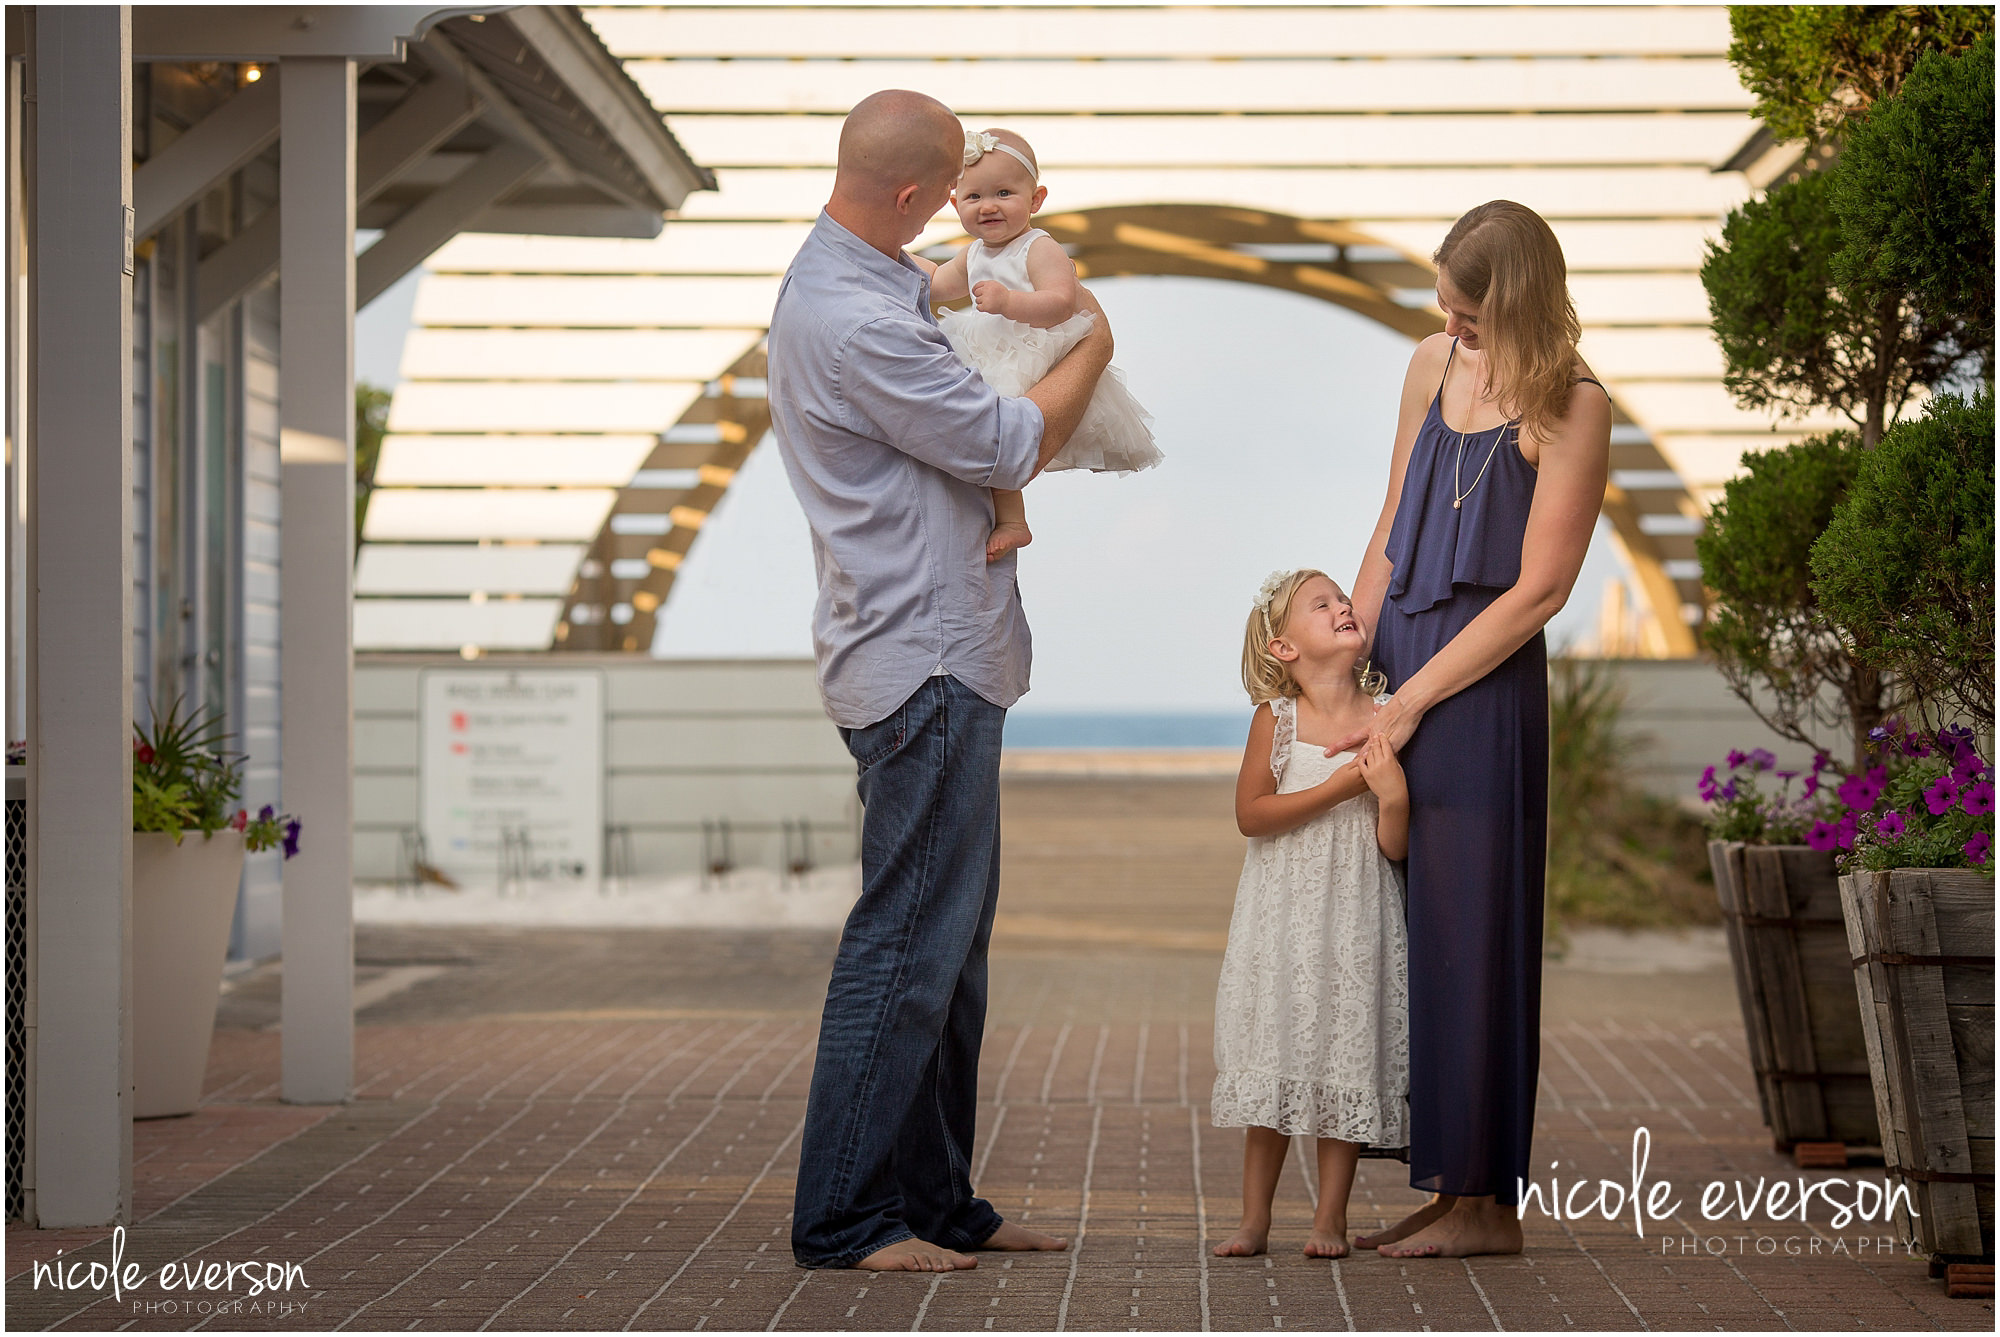 family portraits located in seaside town center